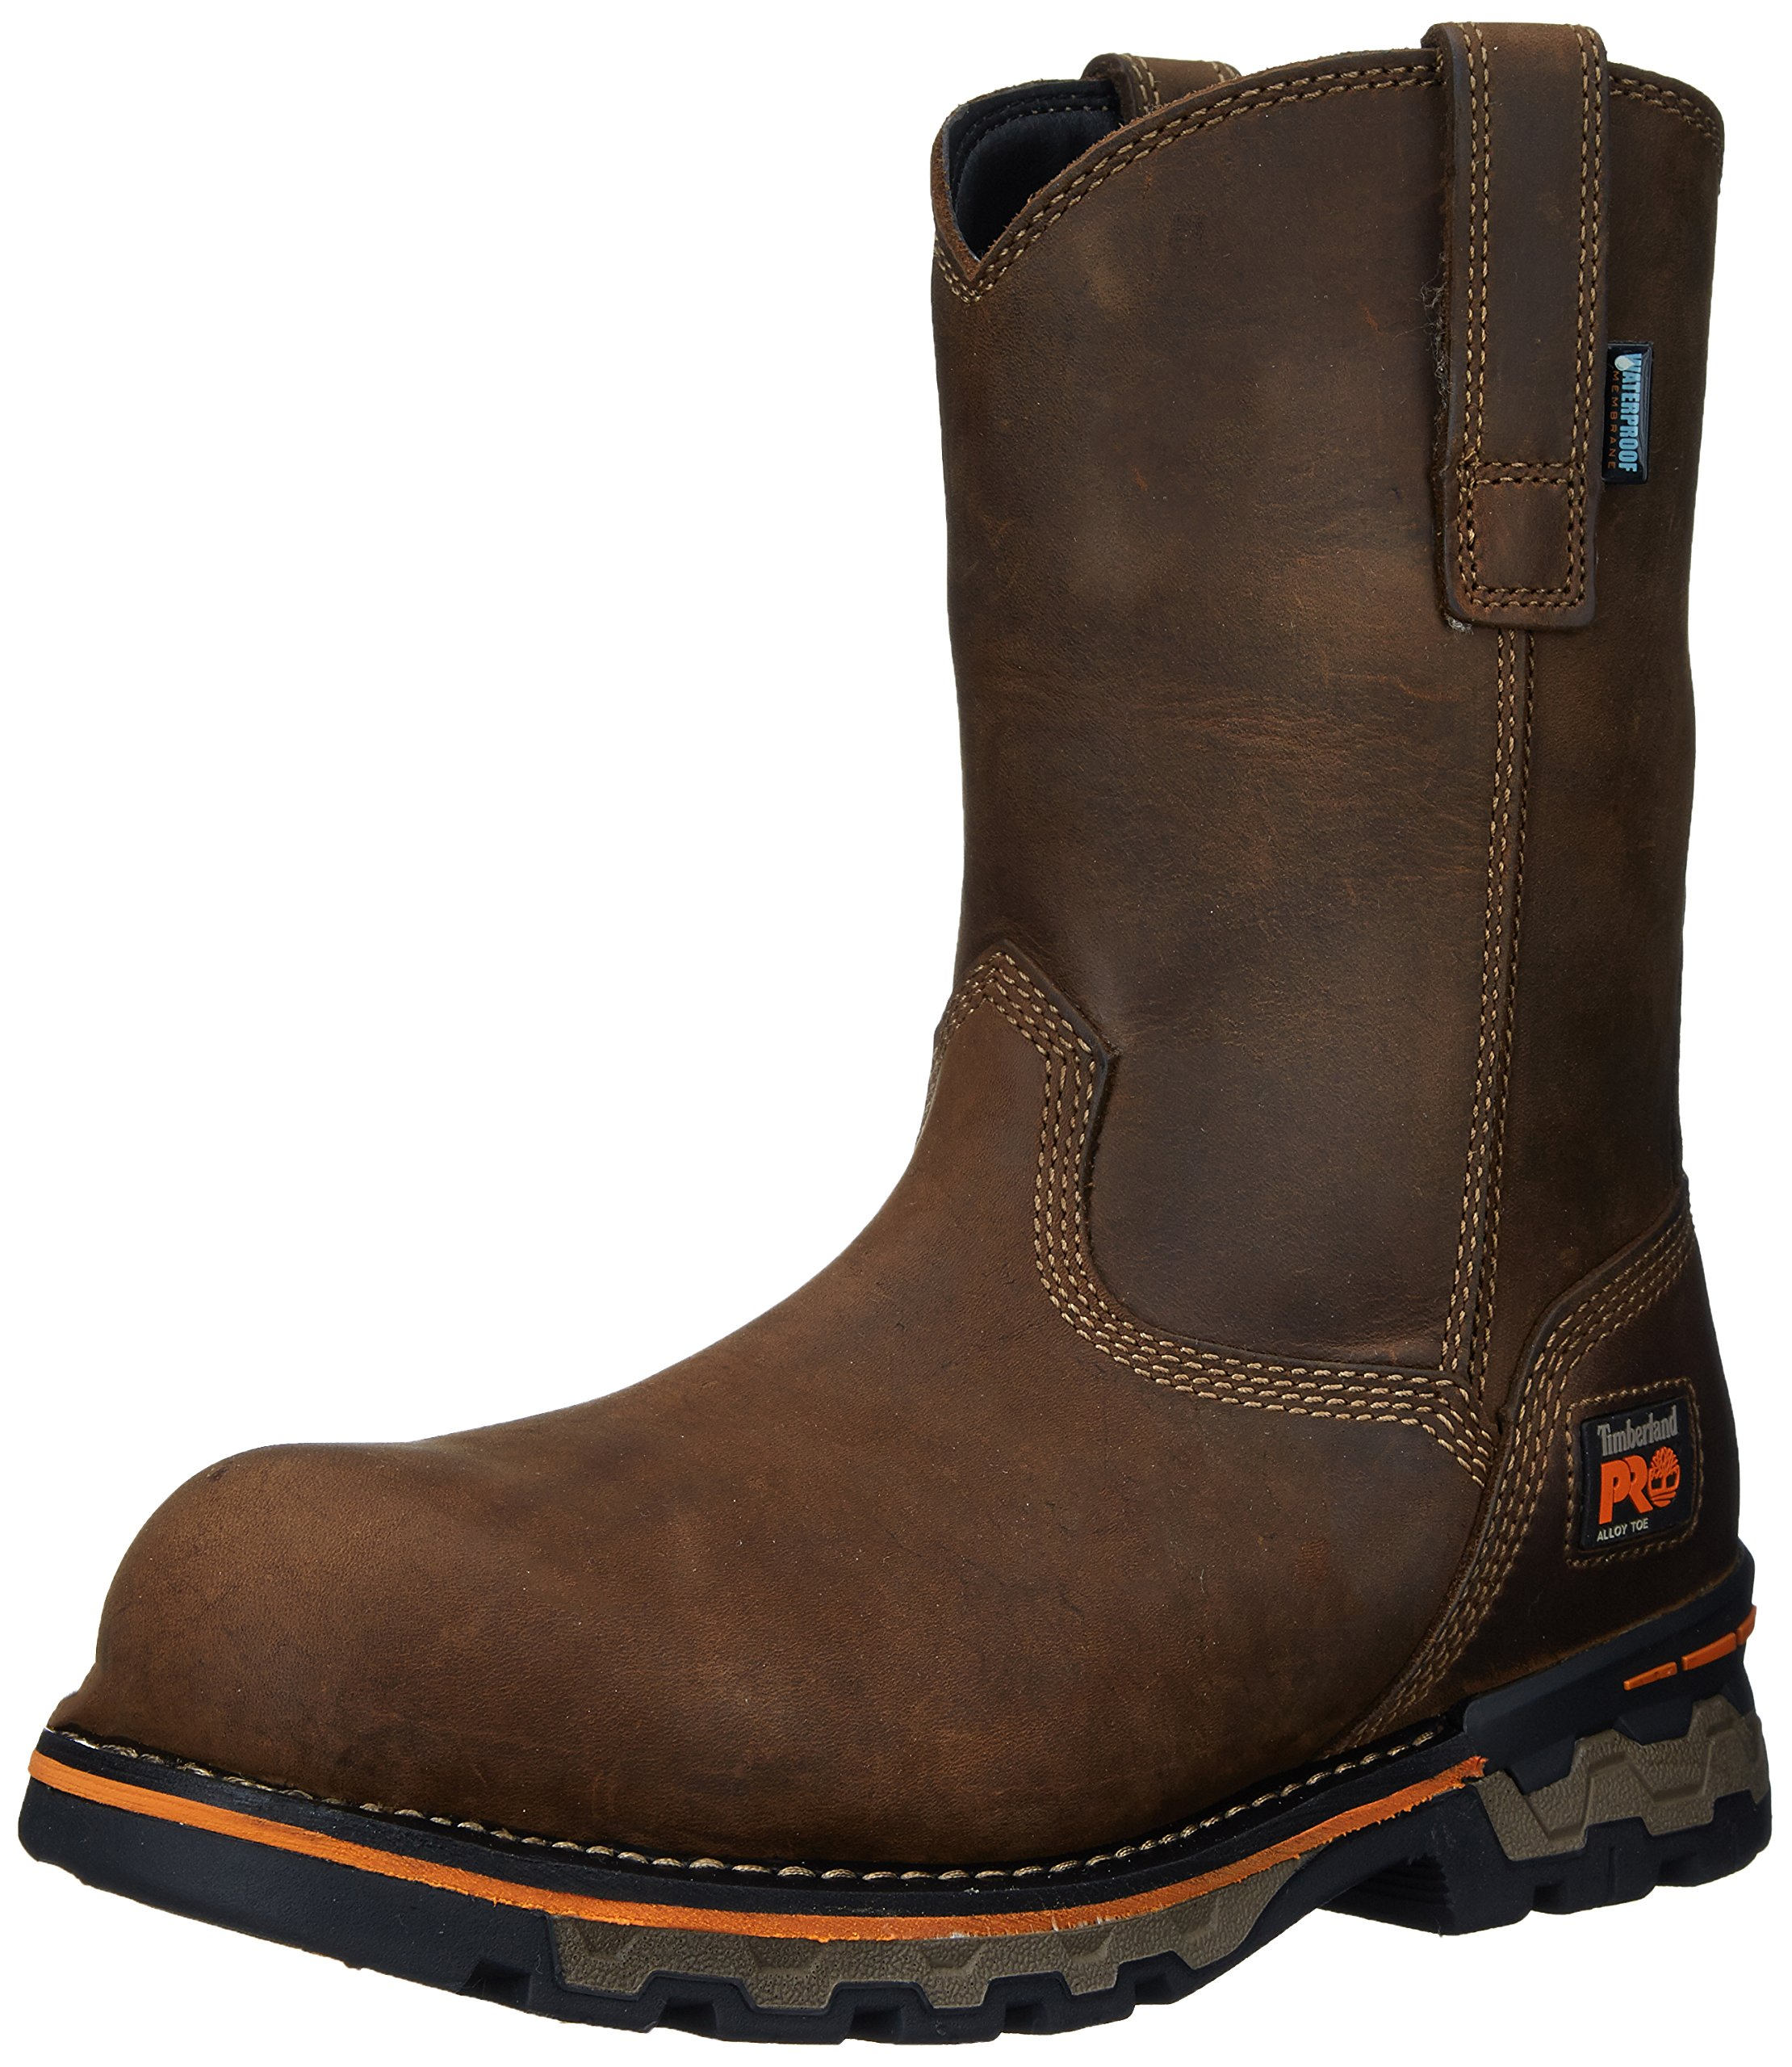 Timberland PRO Men's AG Boss Pull-On Alloy Toe Waterproof Work and Hunt Boot, Brown Distressed Leather, 11.5 M US